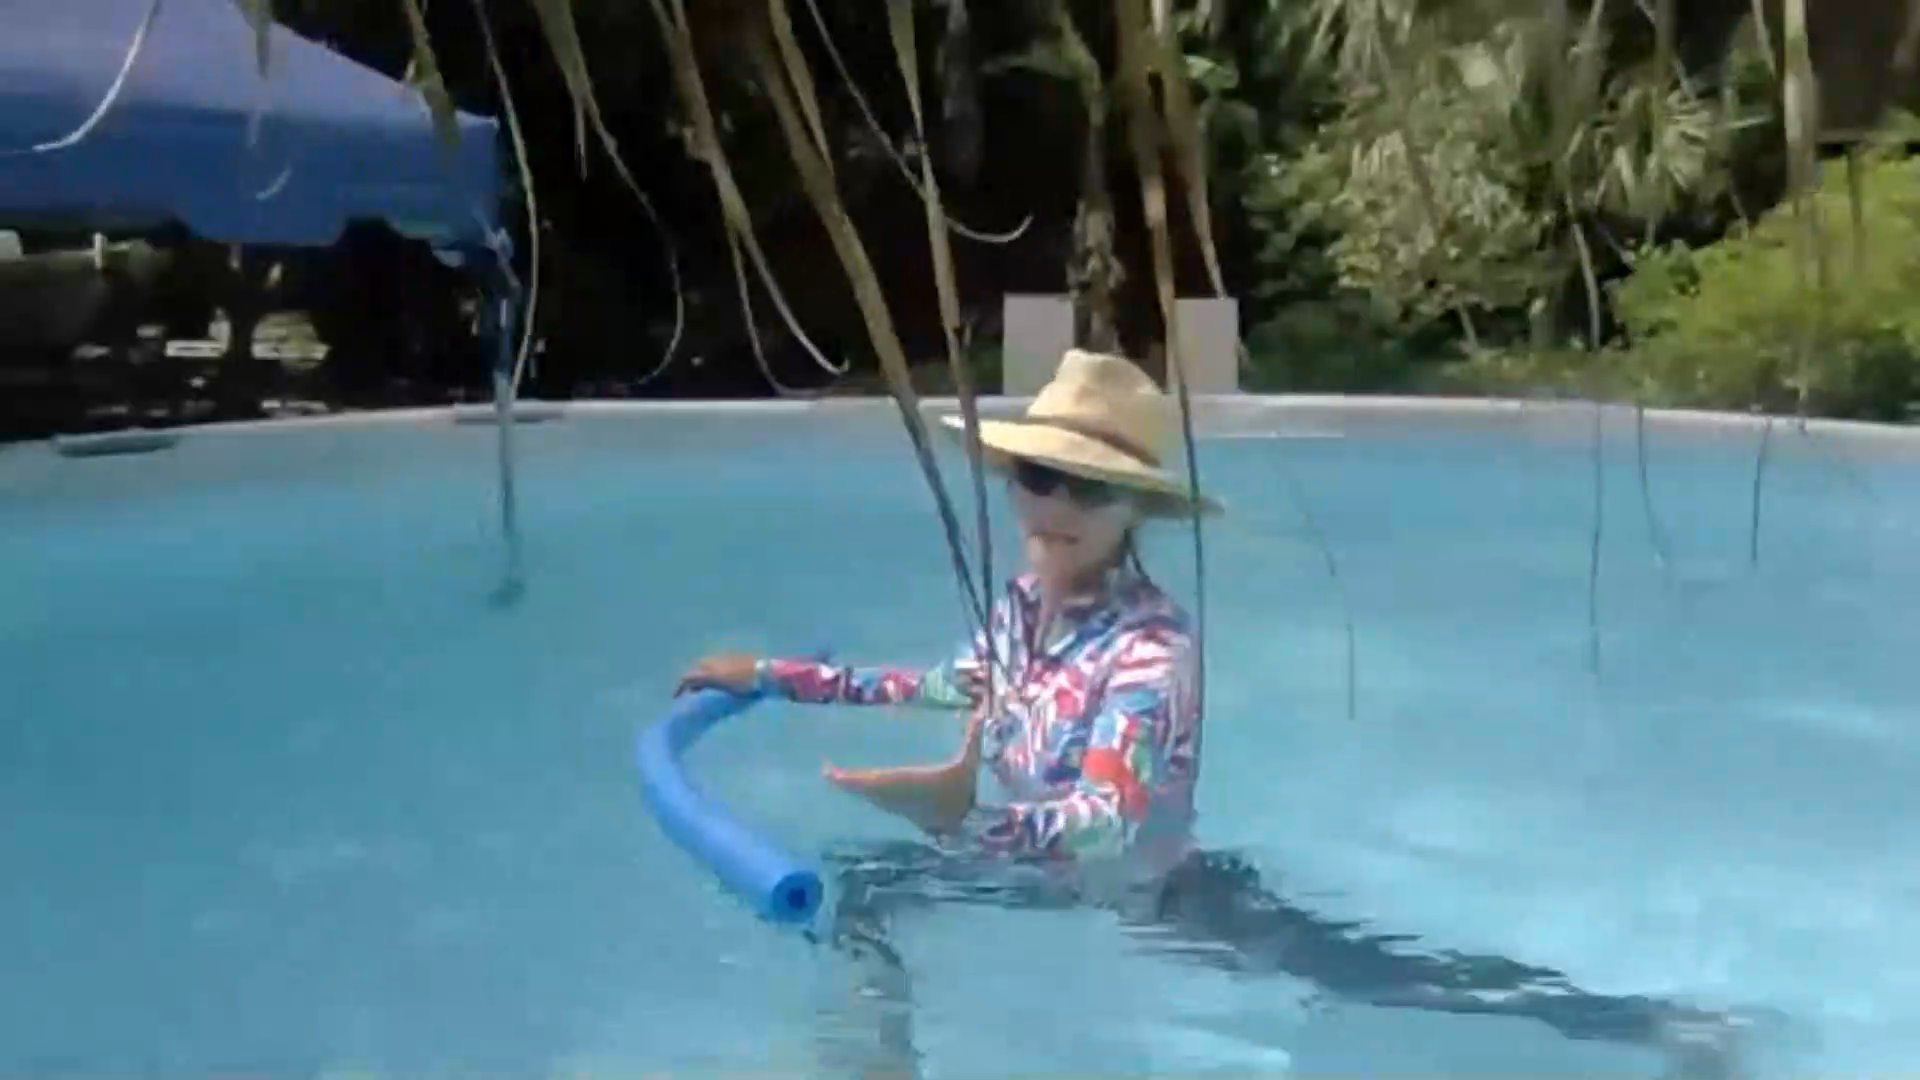 woman in the pool with a pool noodle explaining the aqua yoga online course